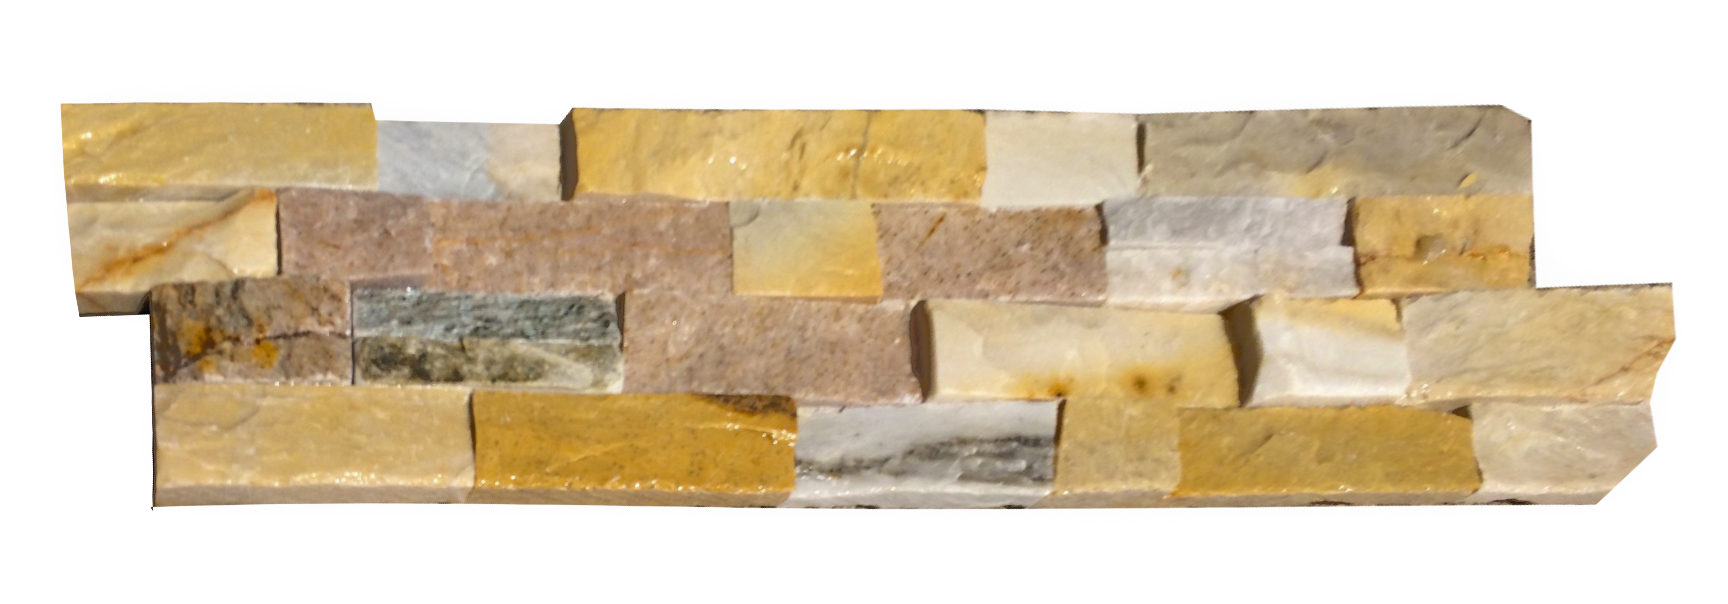 Stacked stone exterior natural stone wall finish shm stac122 stone house marketing co ltd in - Flaunt your natural stone wall finishes ...